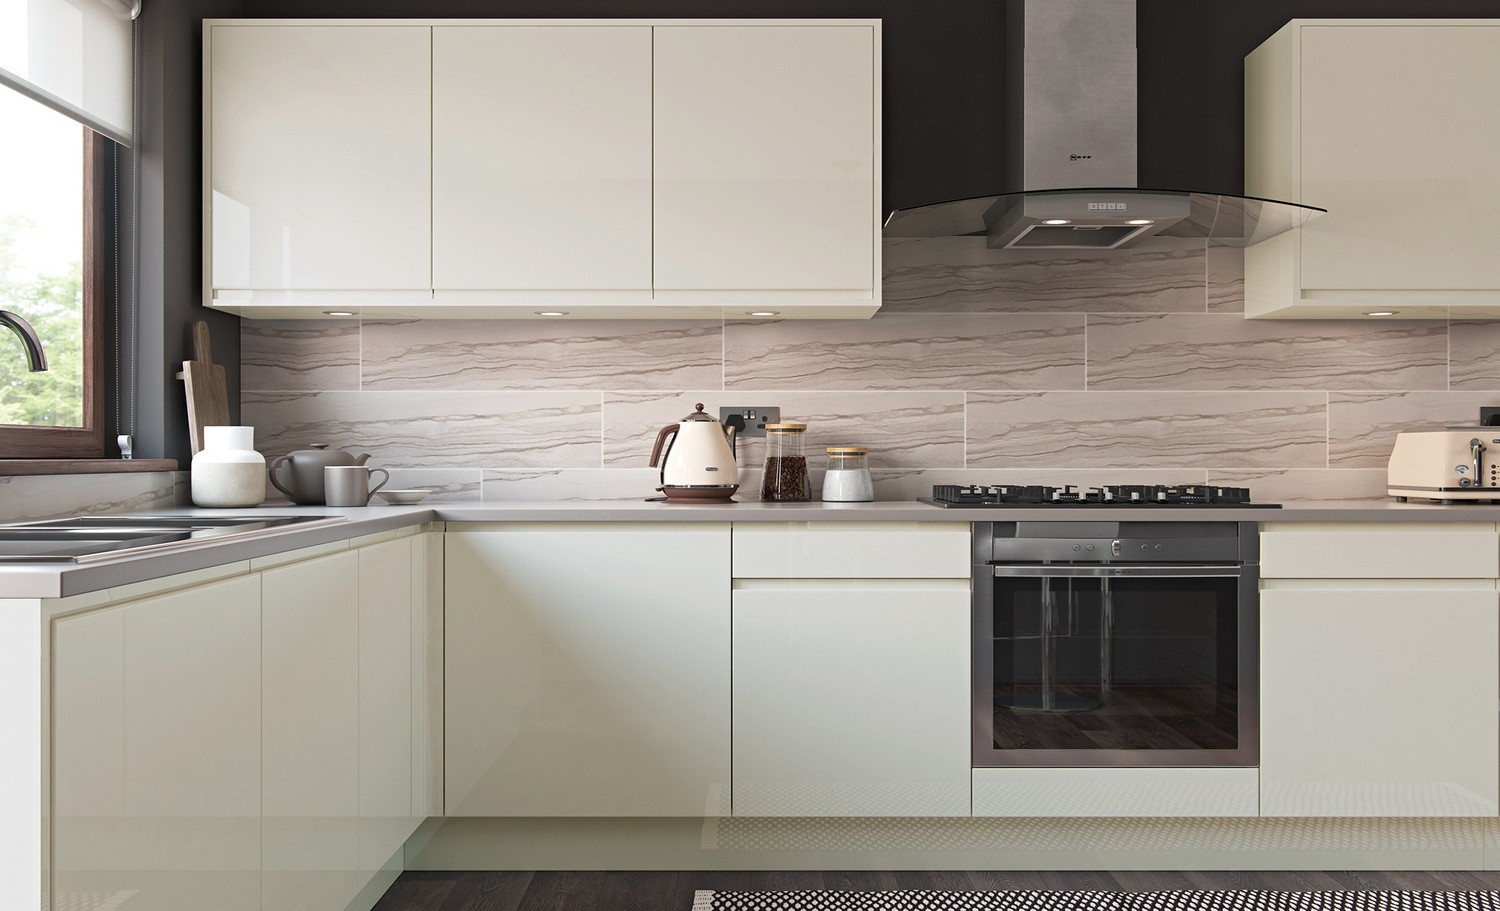 Tiles Used In Kitchen